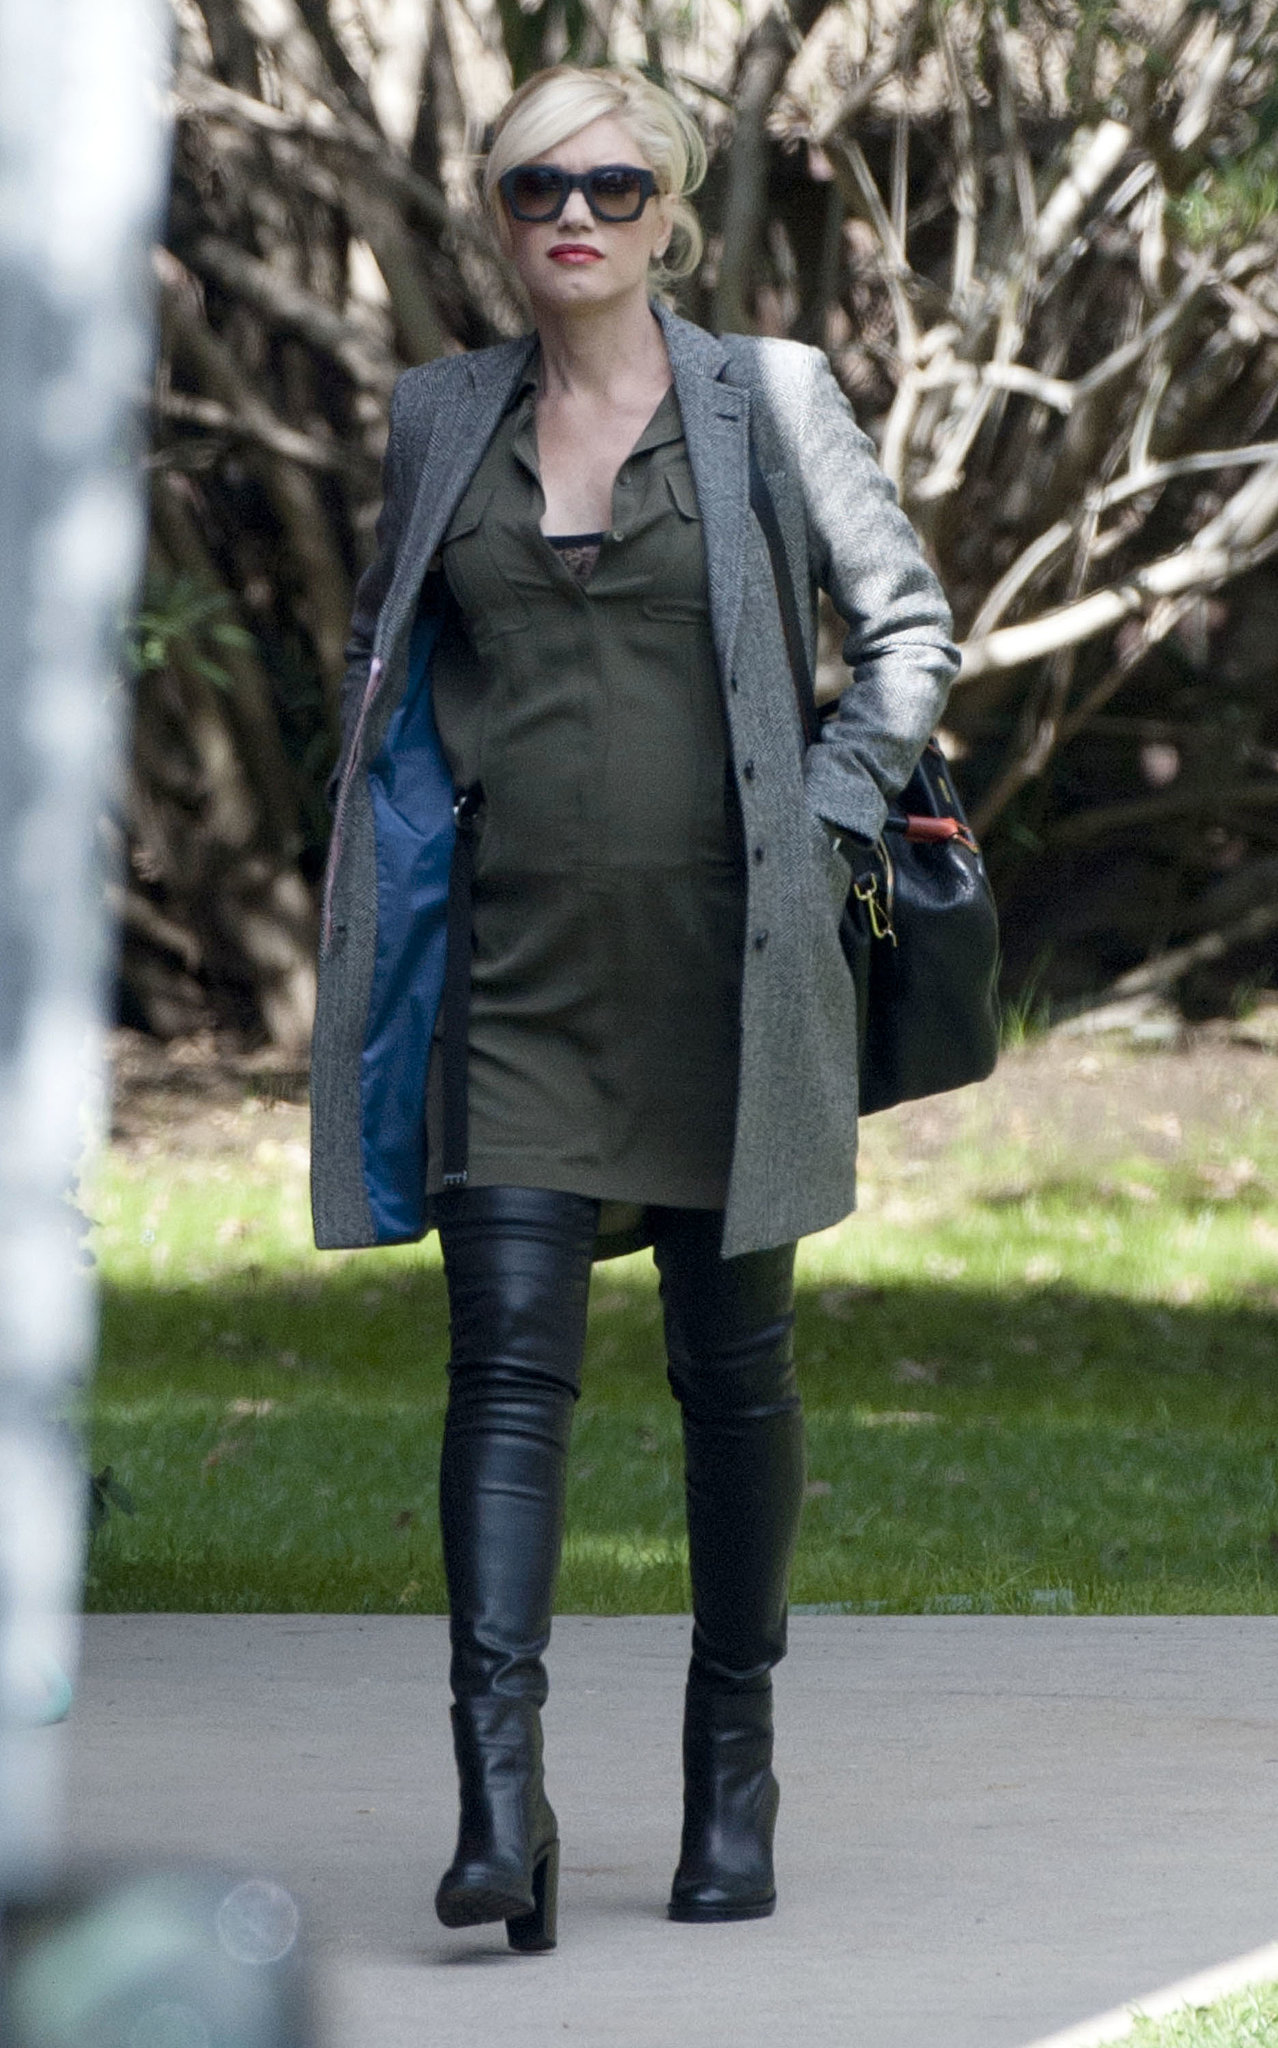 Business casual for Gwen meant a silky dress, over-the-knee boots, and a long tailored blazer.